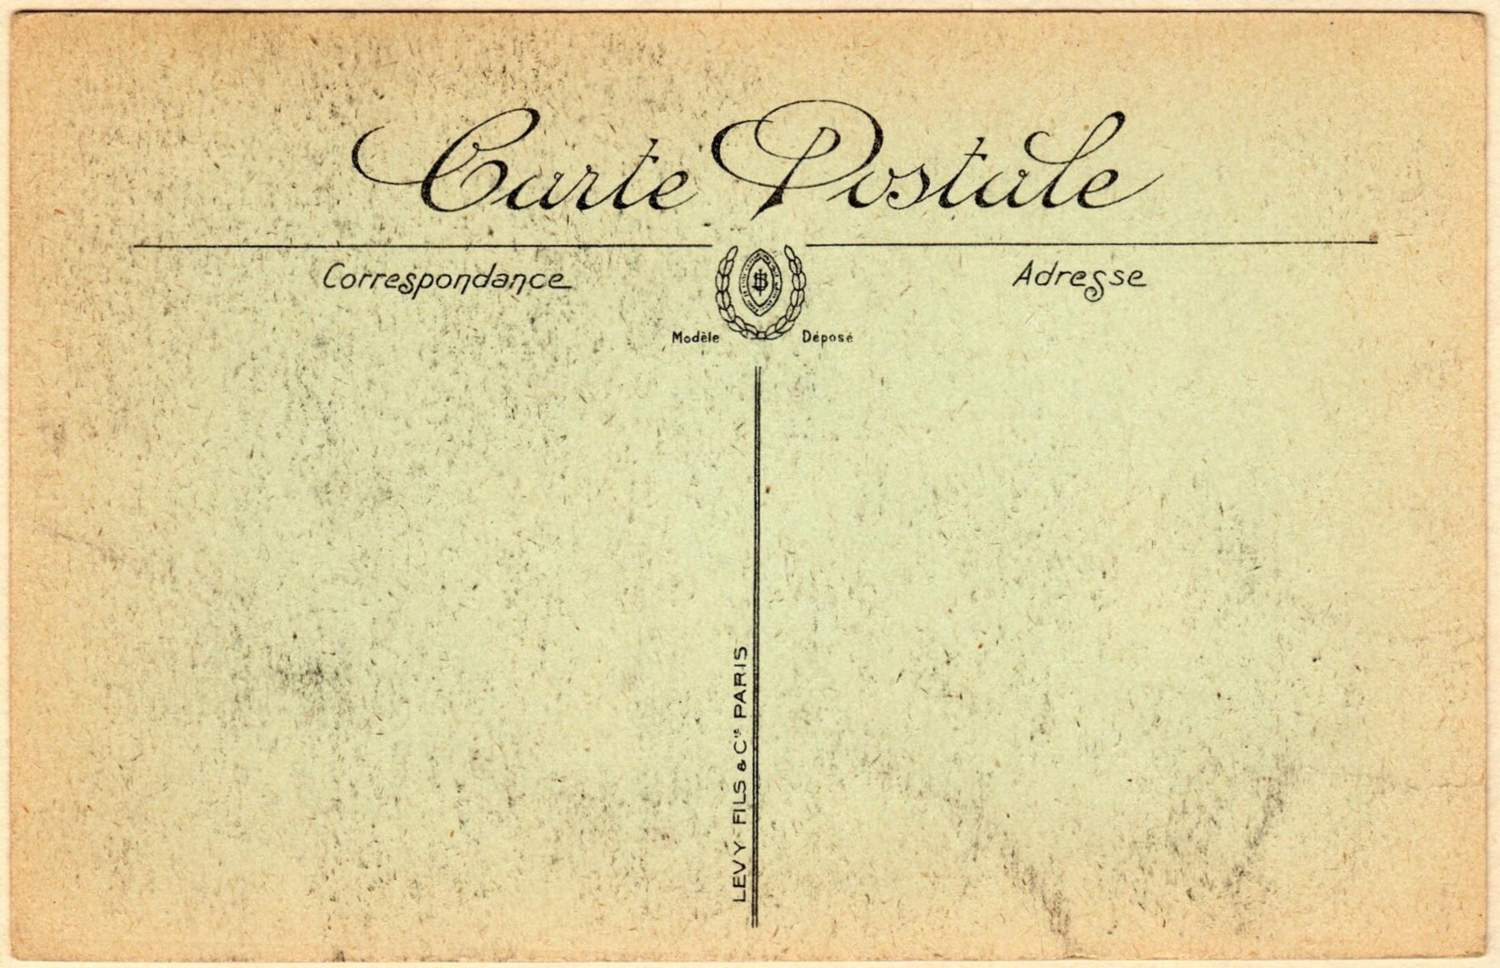 Vintage Postcard Template - Make your own postcard template